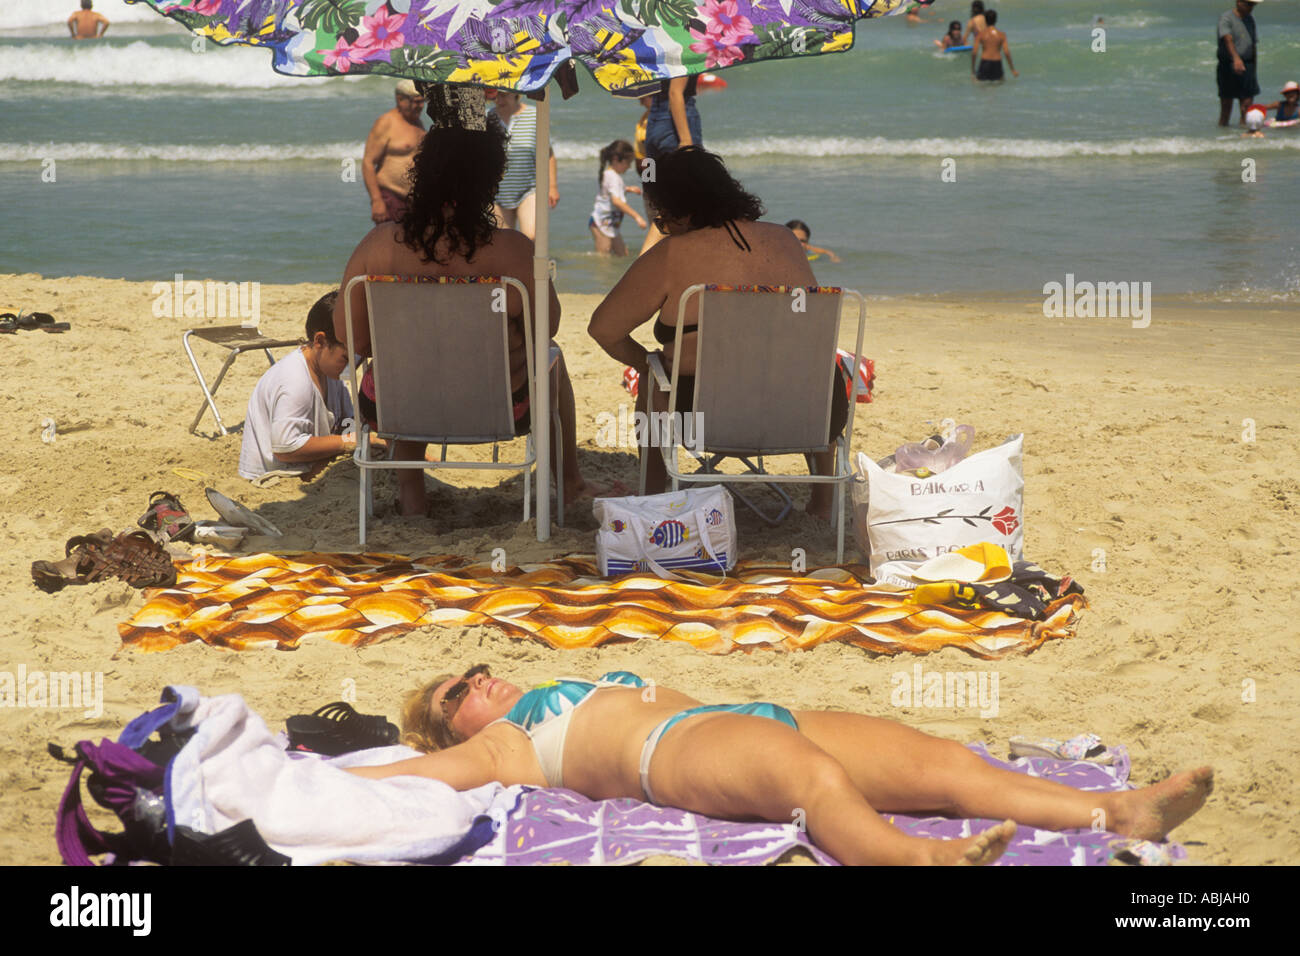 Exposure to UV rays increases the risk of skin cancer - Stock Image